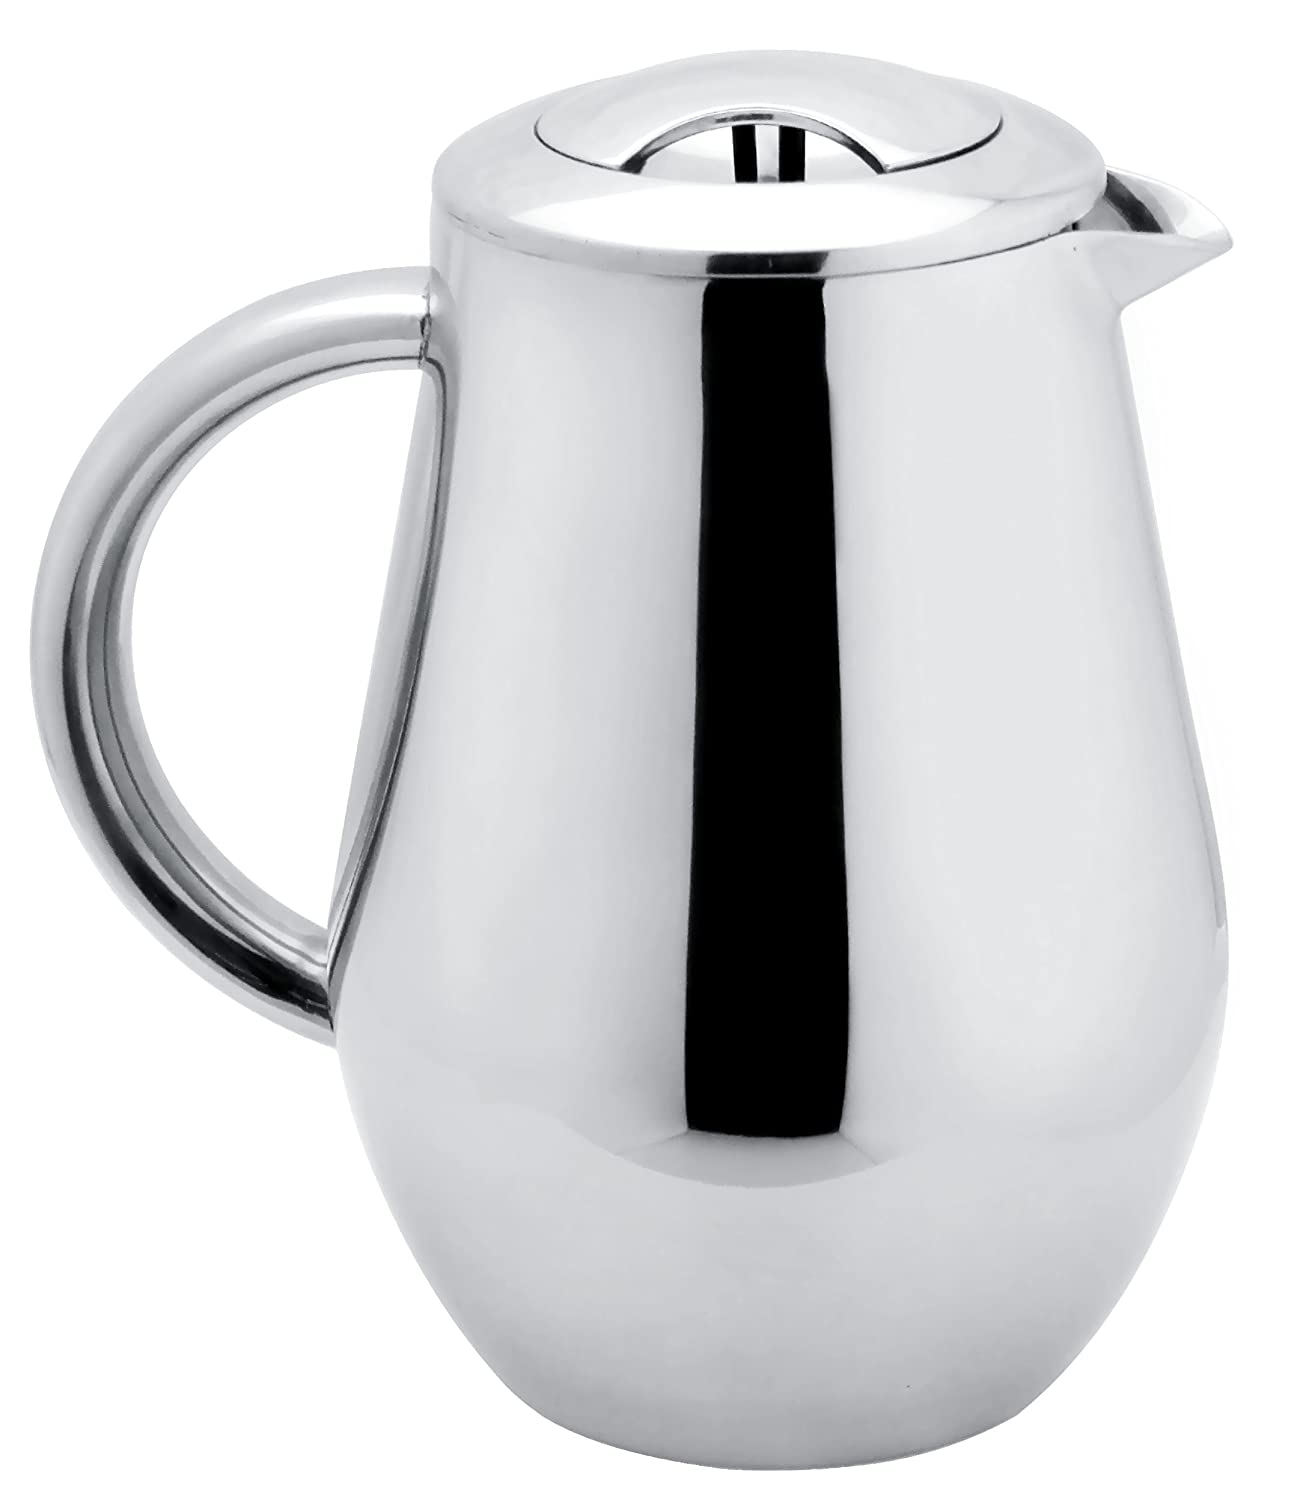 SterlingPro Classic European Style Double wall Stainless Steel French Coffee Press